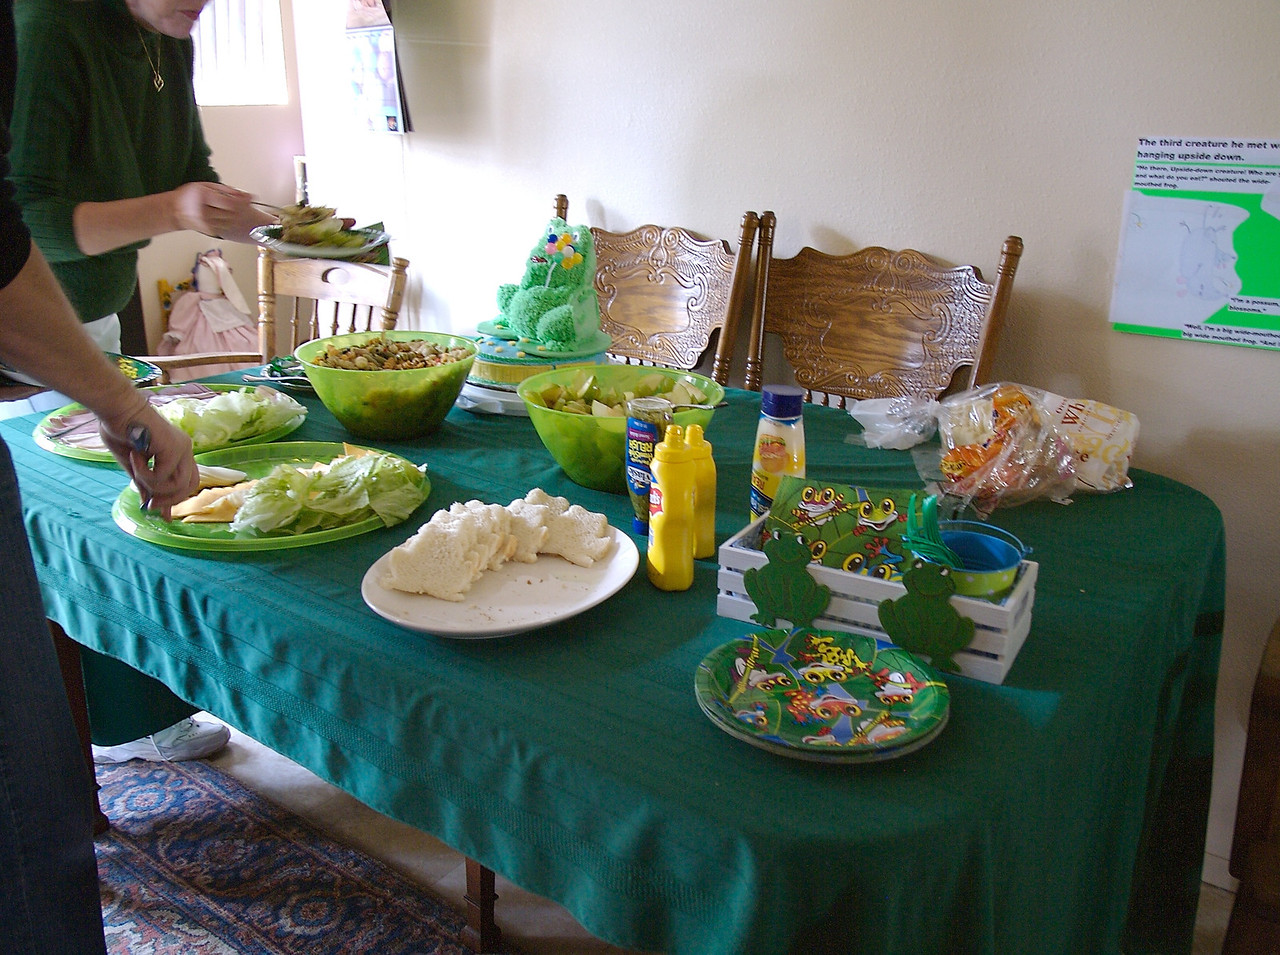 We had frog sandwiches (bread cut with a frog cookie cutter) grapes & green apples, pasta salad, and green jigglers.